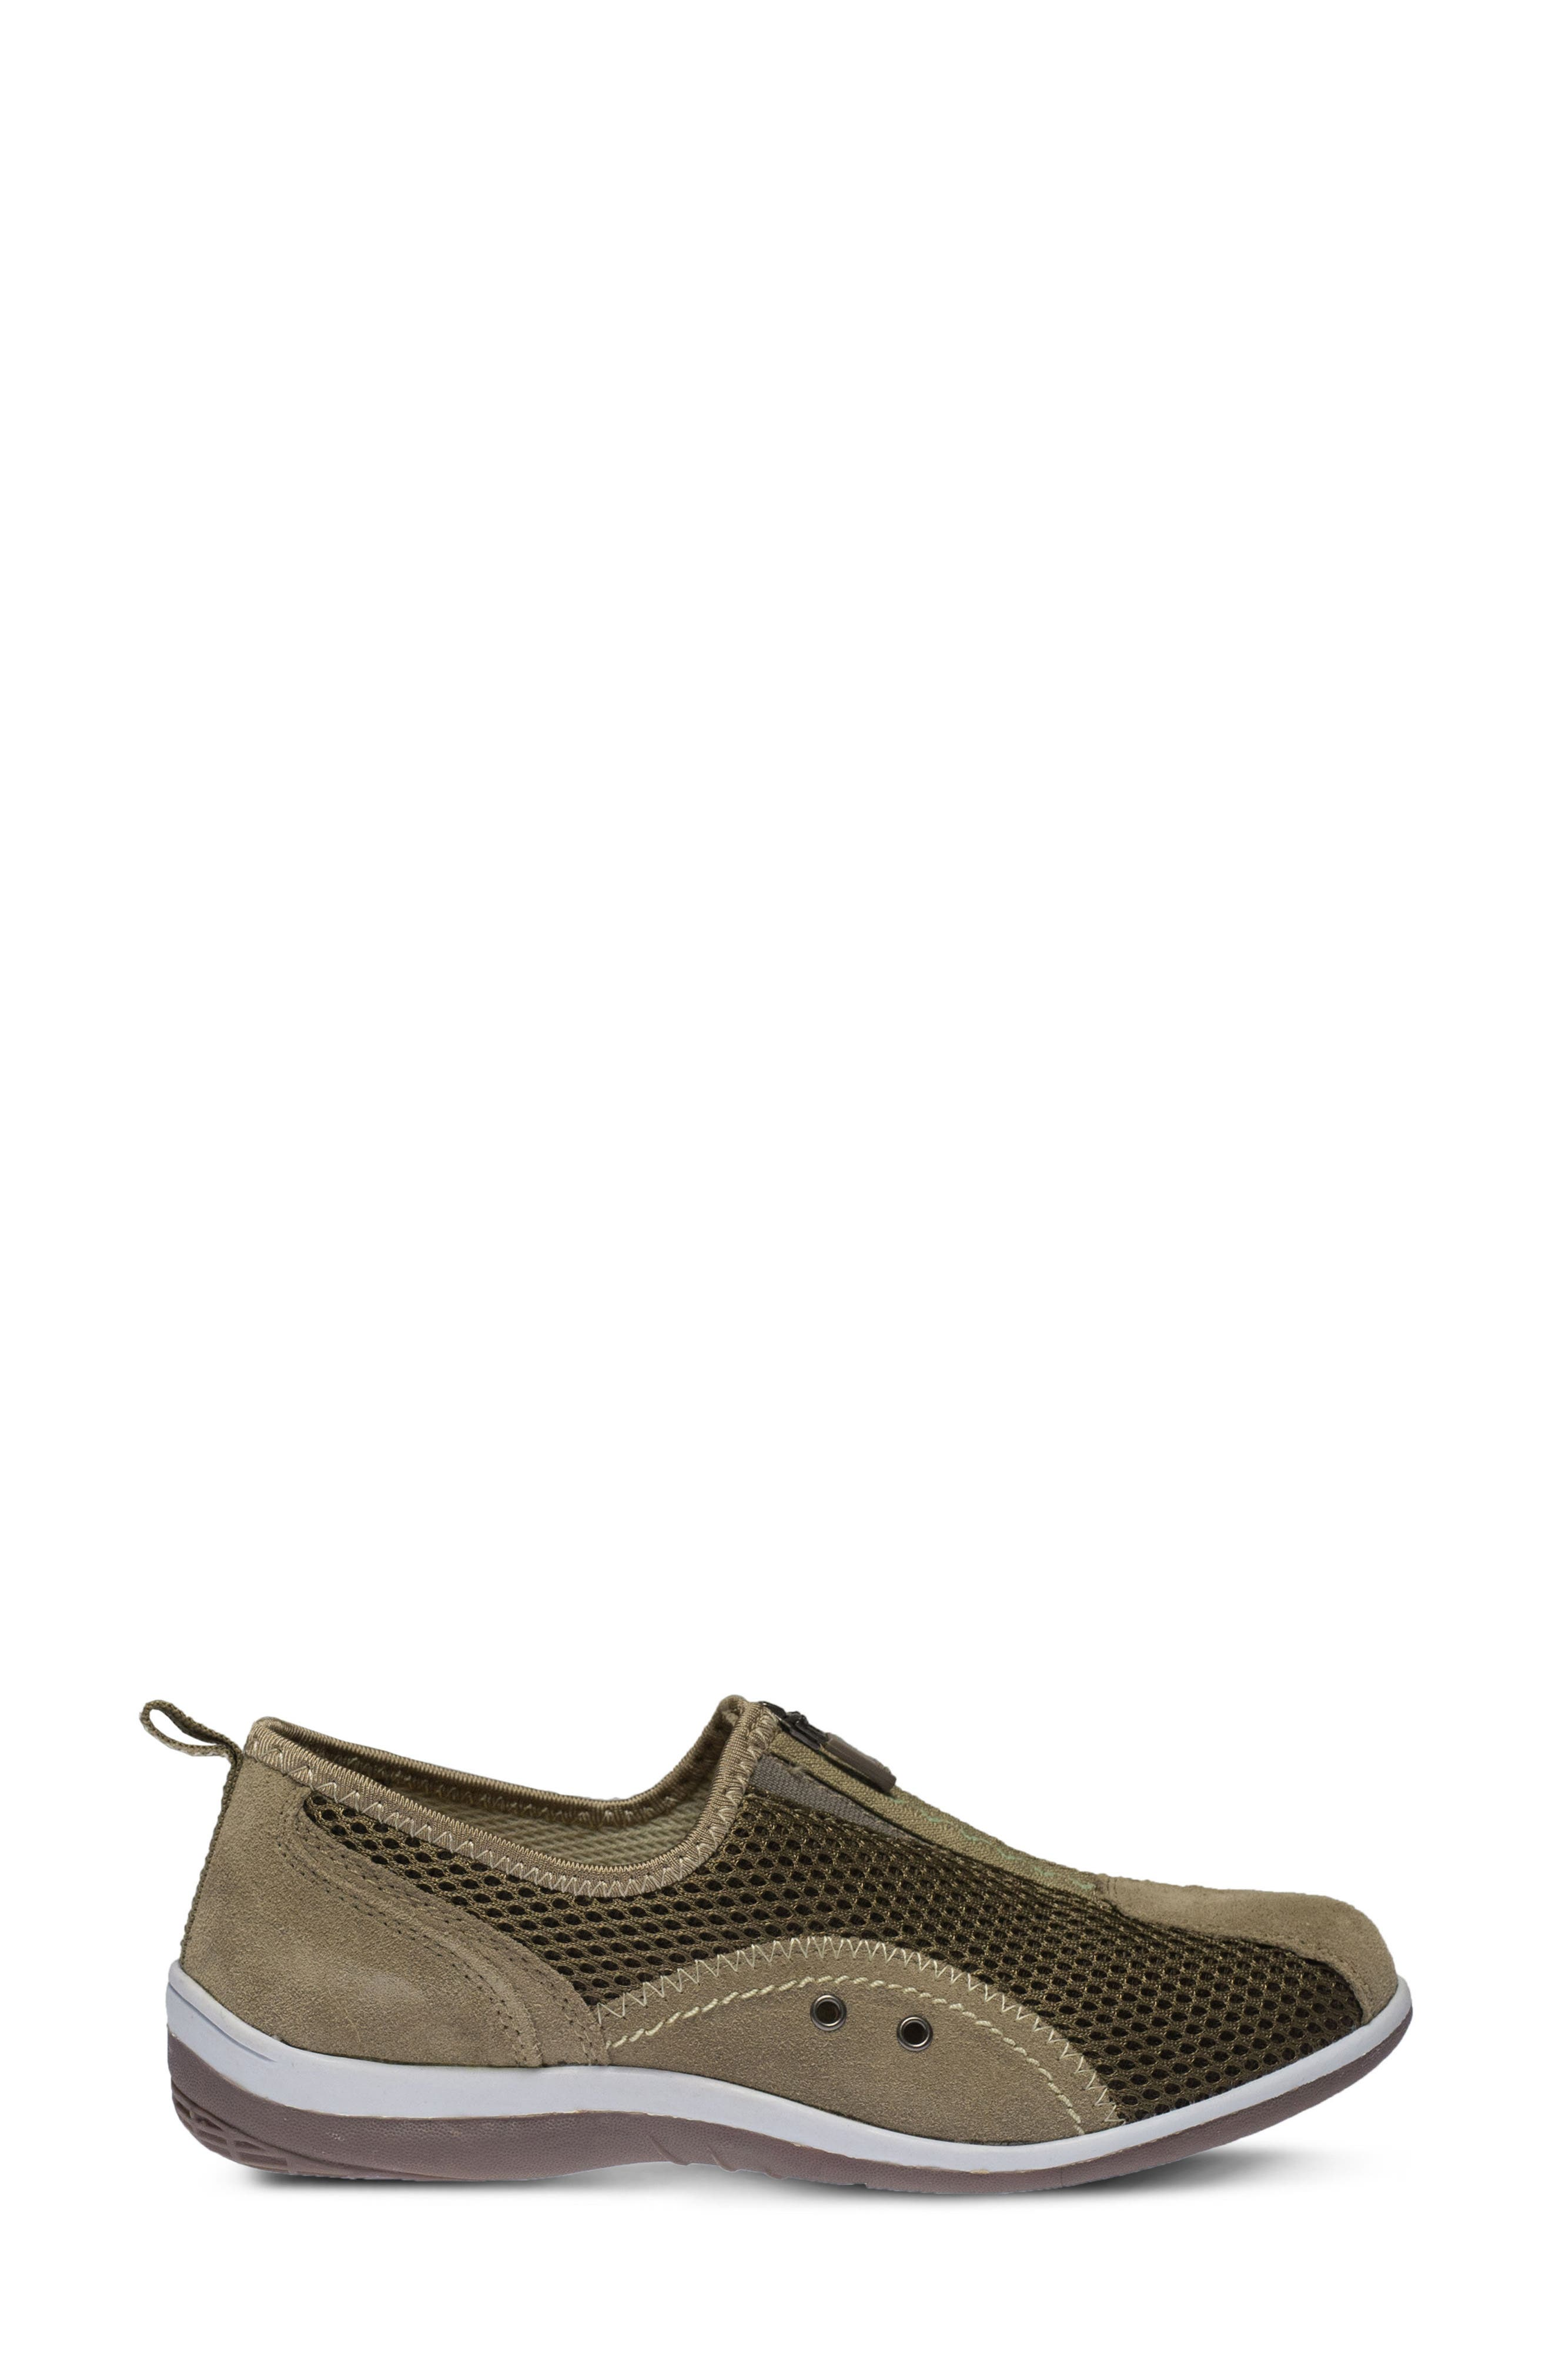 Racer Slip-On Sneaker,                             Alternate thumbnail 3, color,                             Taupe Suede